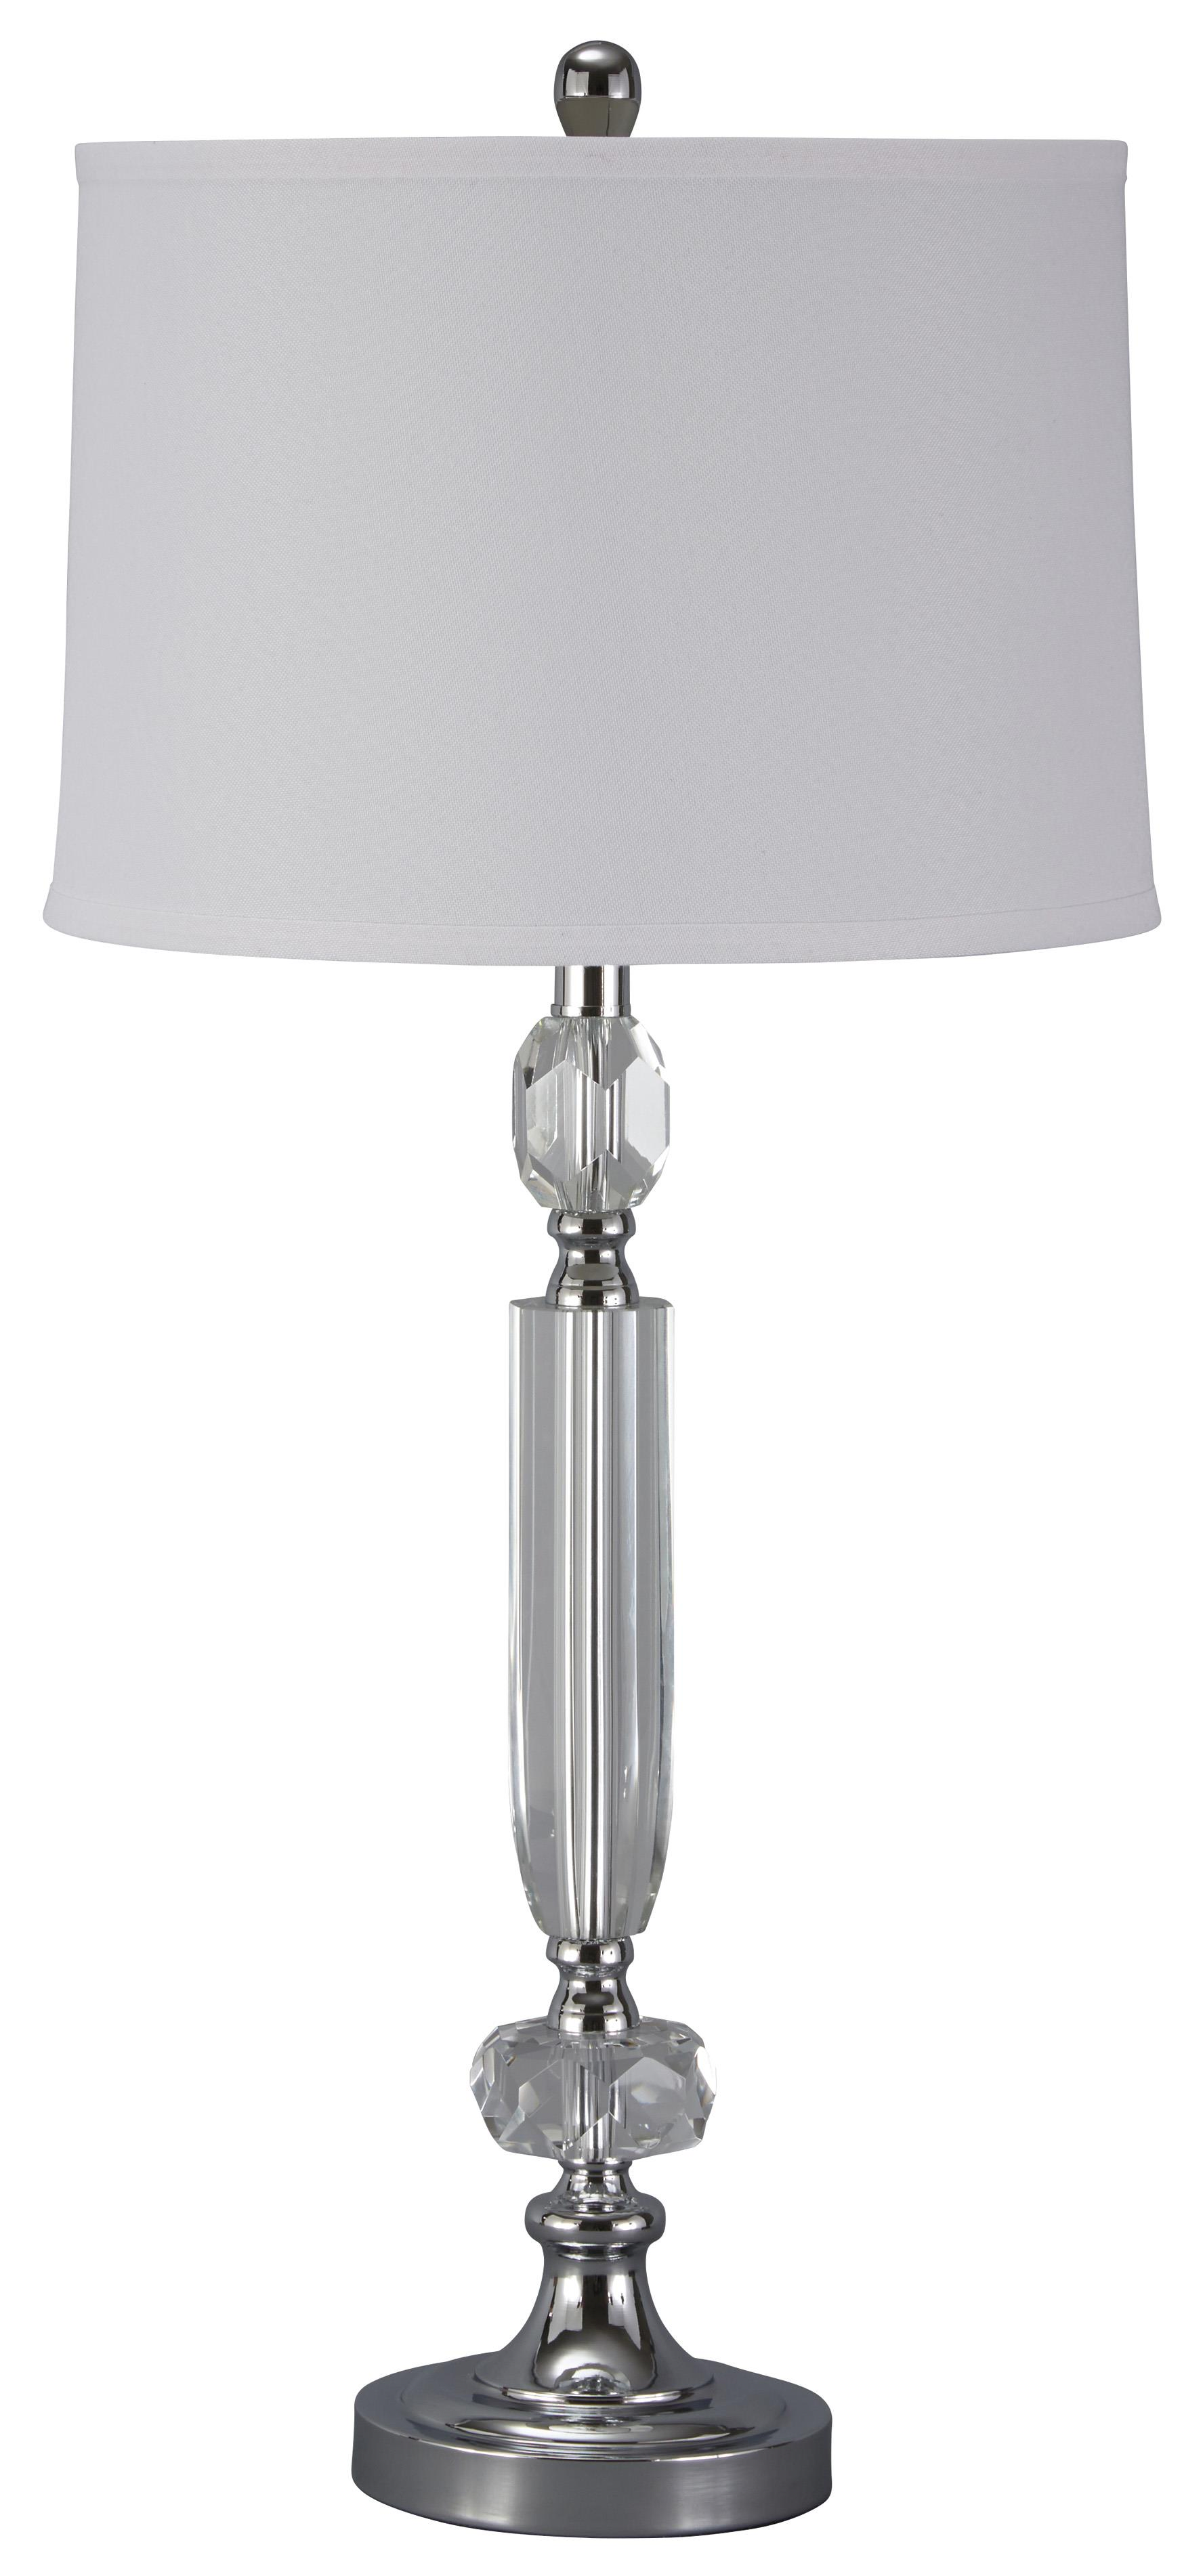 Signature Design by Ashley Lamps - Traditional Classics Tajo Crystal Table Lamp - Item Number: L428014